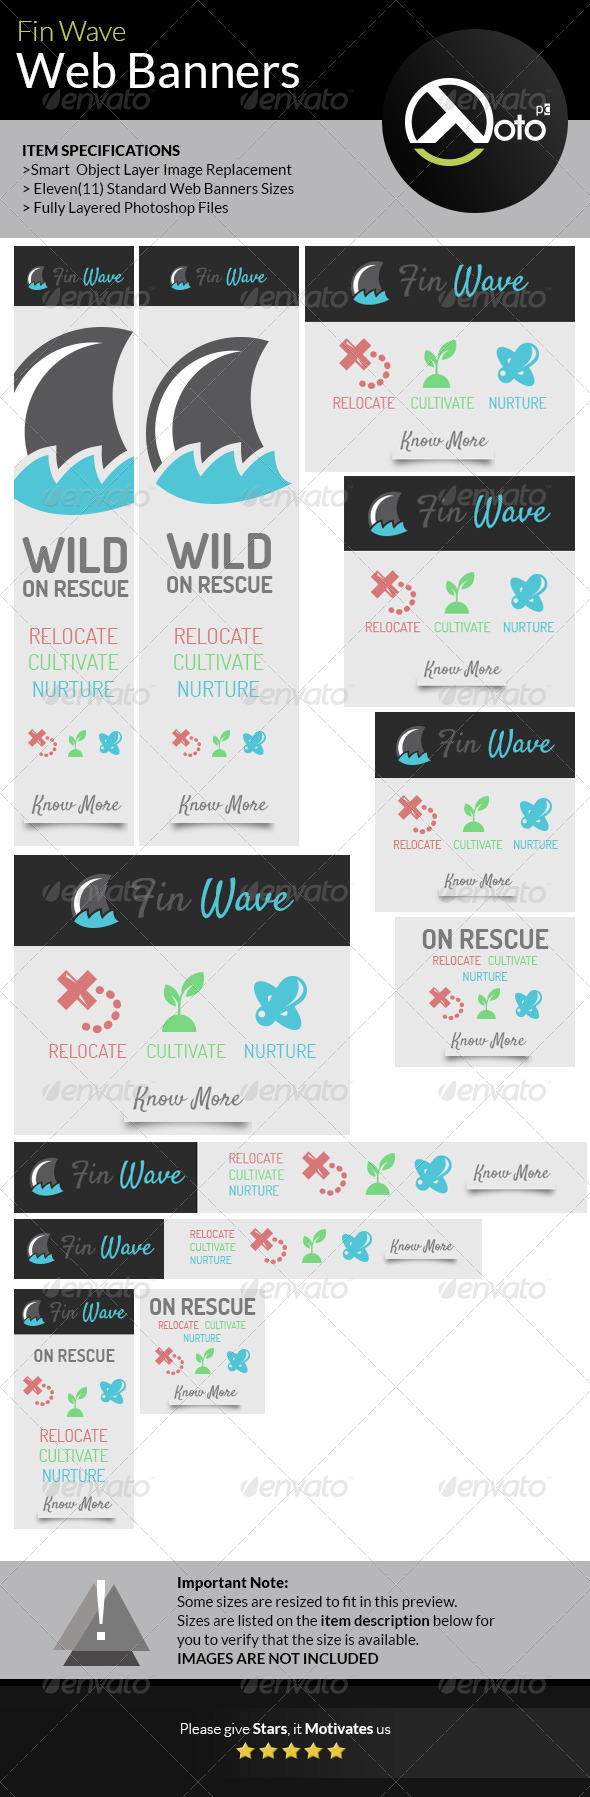 GraphicRiver Fin Wave Wildlife Rescue Web Banners 7359128